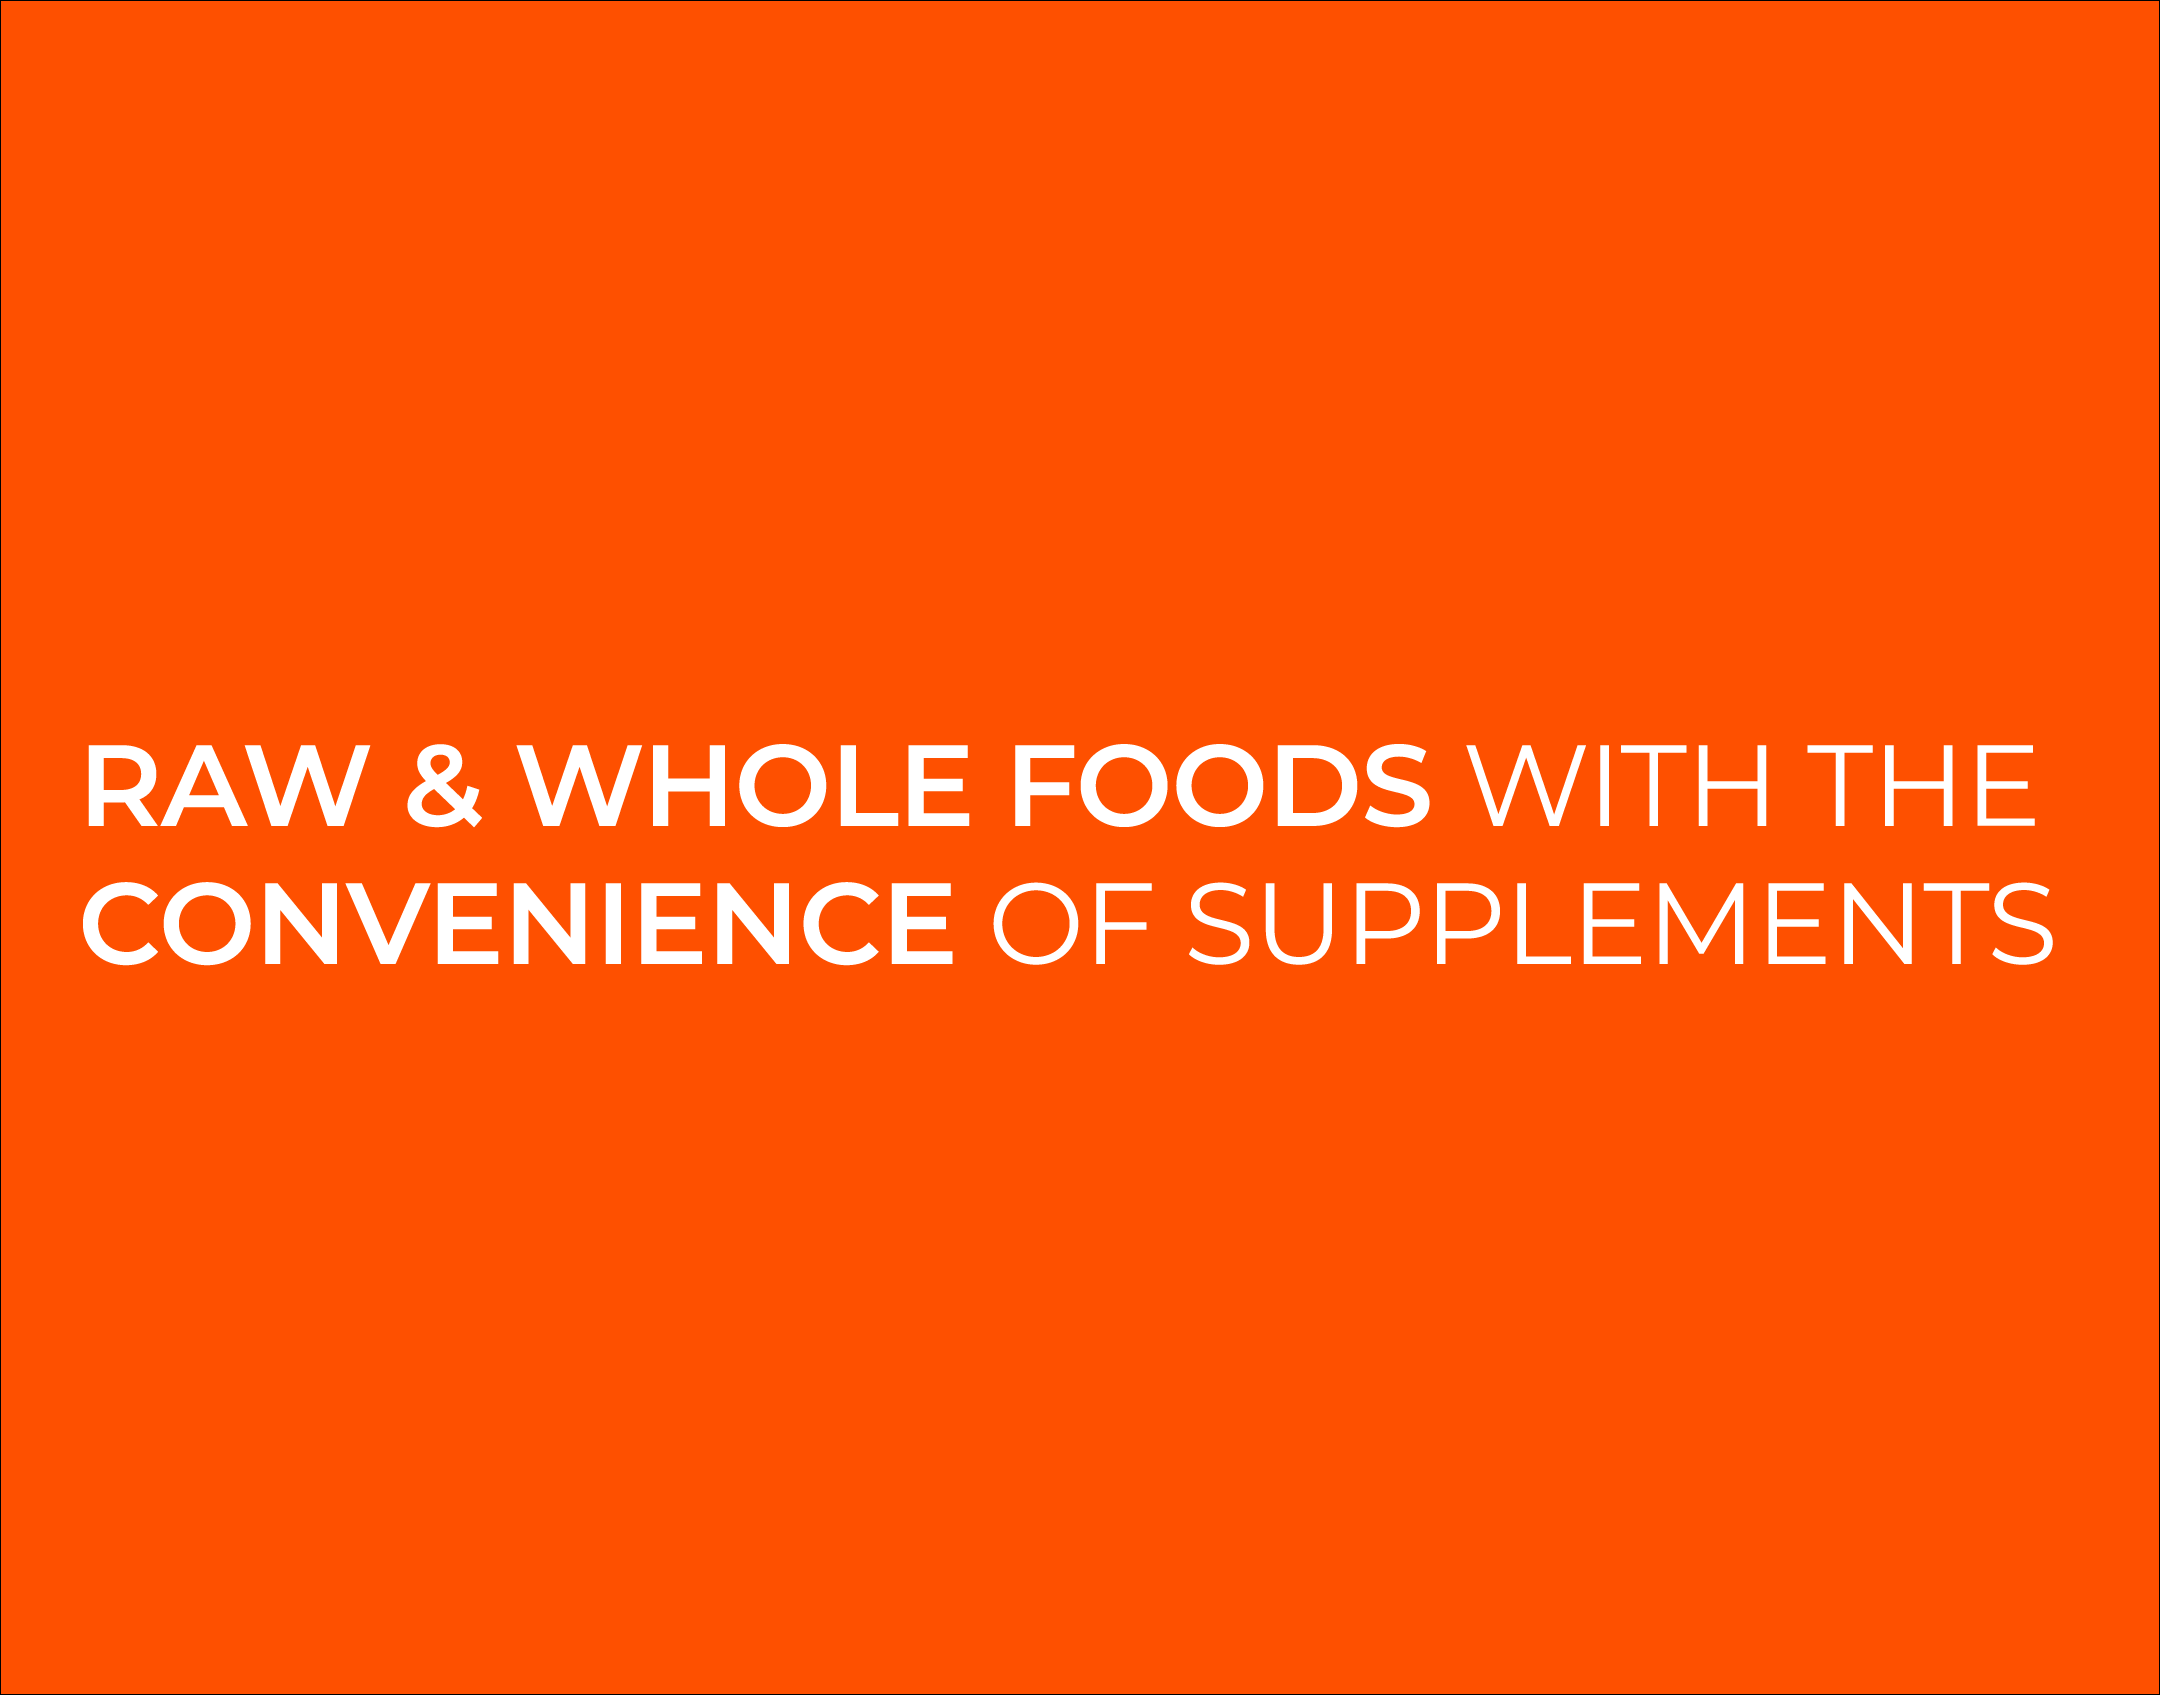 Smoov Blends are raw and whole foods with the convenience of supplements